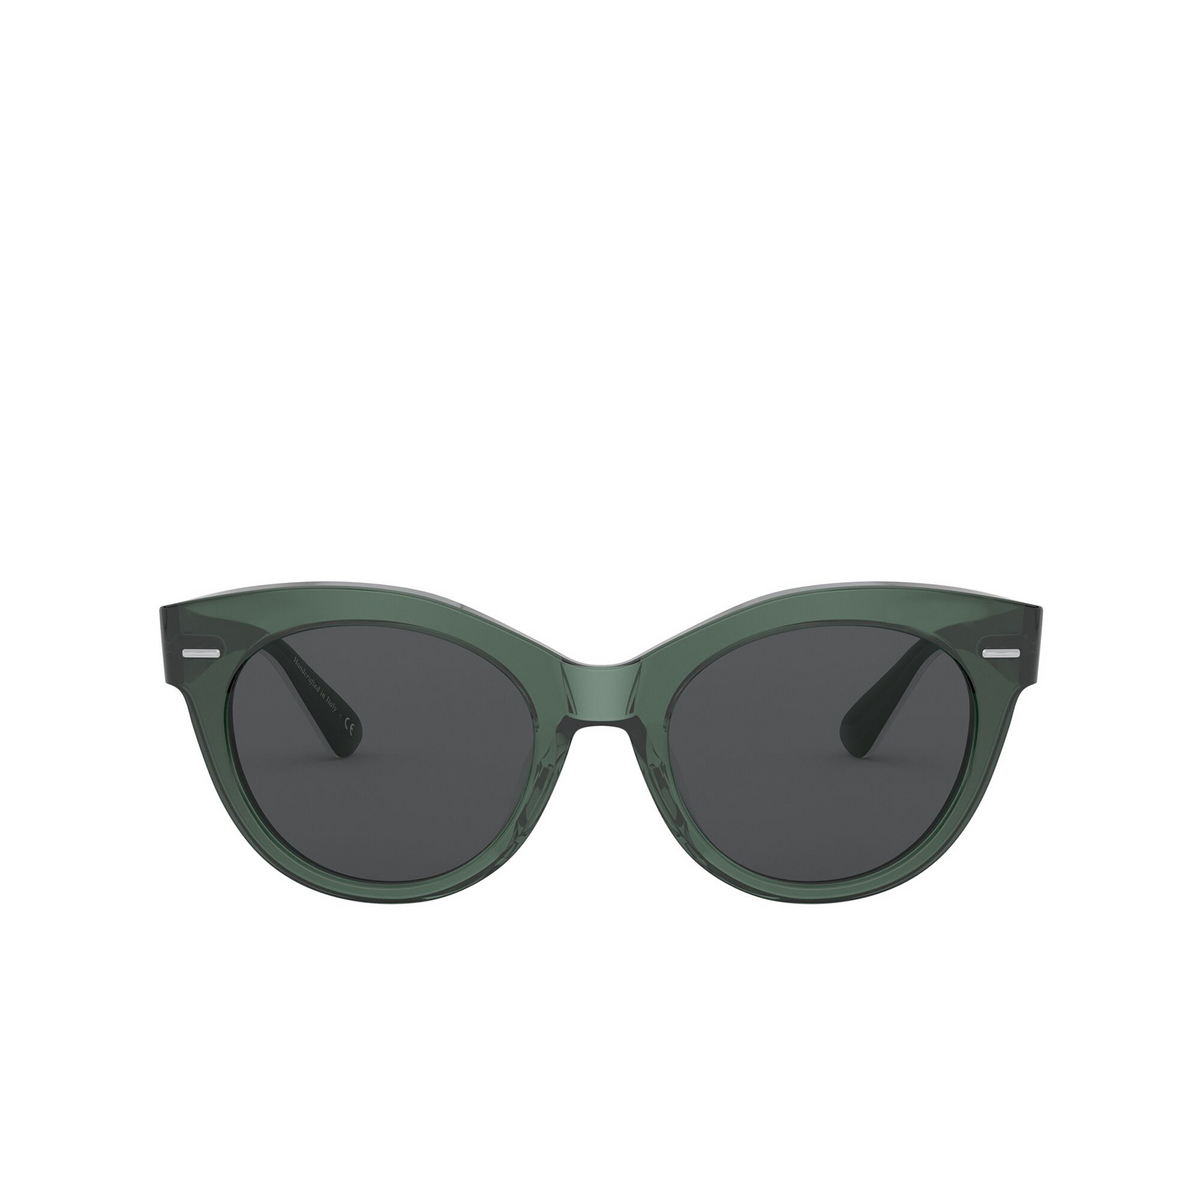 Oliver Peoples® Round Sunglasses: Georgica OV5421SU color Ivy 154787 - front view.